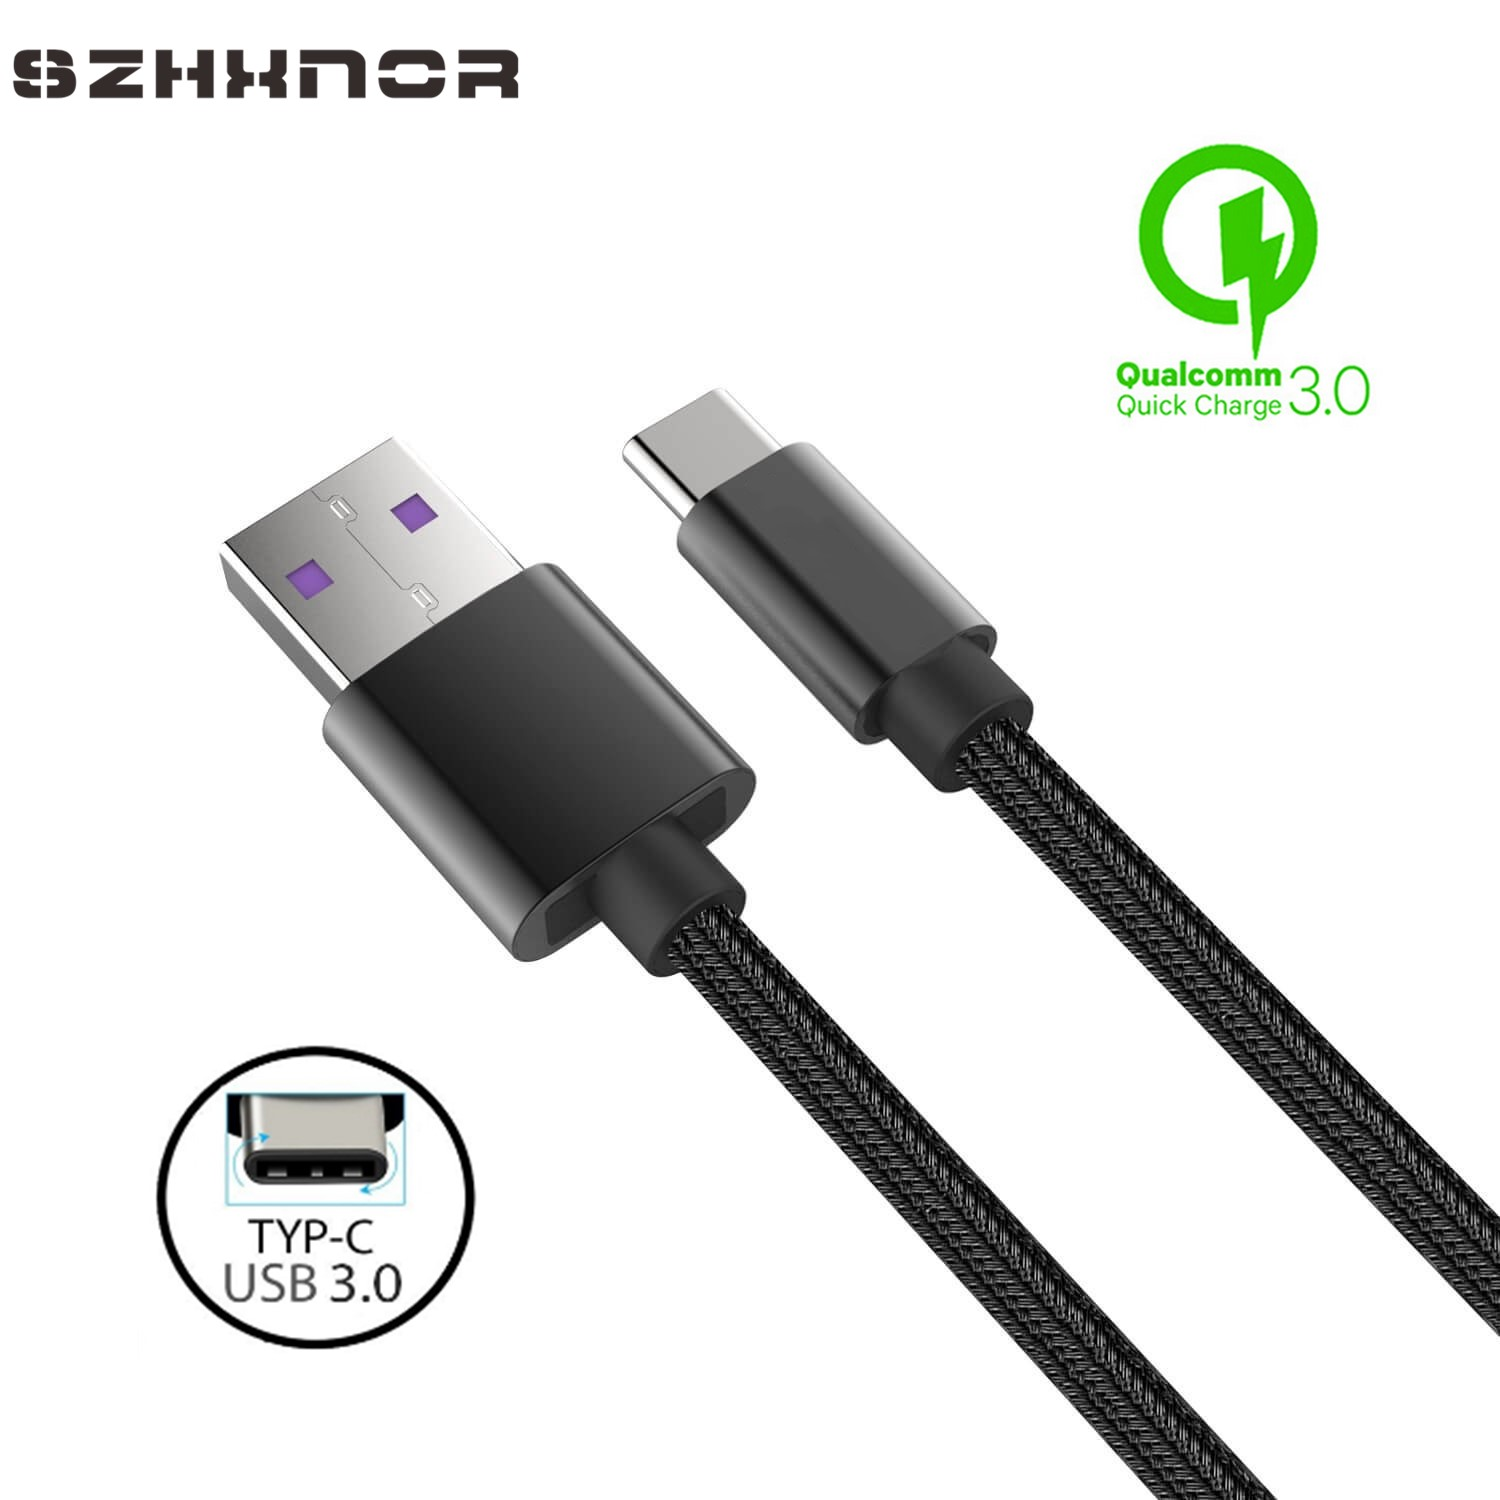 Mobile Phone Accessories Mobile Phone Adapters Type-c To Usb Otg Adaptor Usb-c To Micro Usb Adapter For Sony Xperia 1 L1 L2 R1 Xz Xz3 Xz1 Xz2 Premium X Compact Xa1 Xa2 Ultra